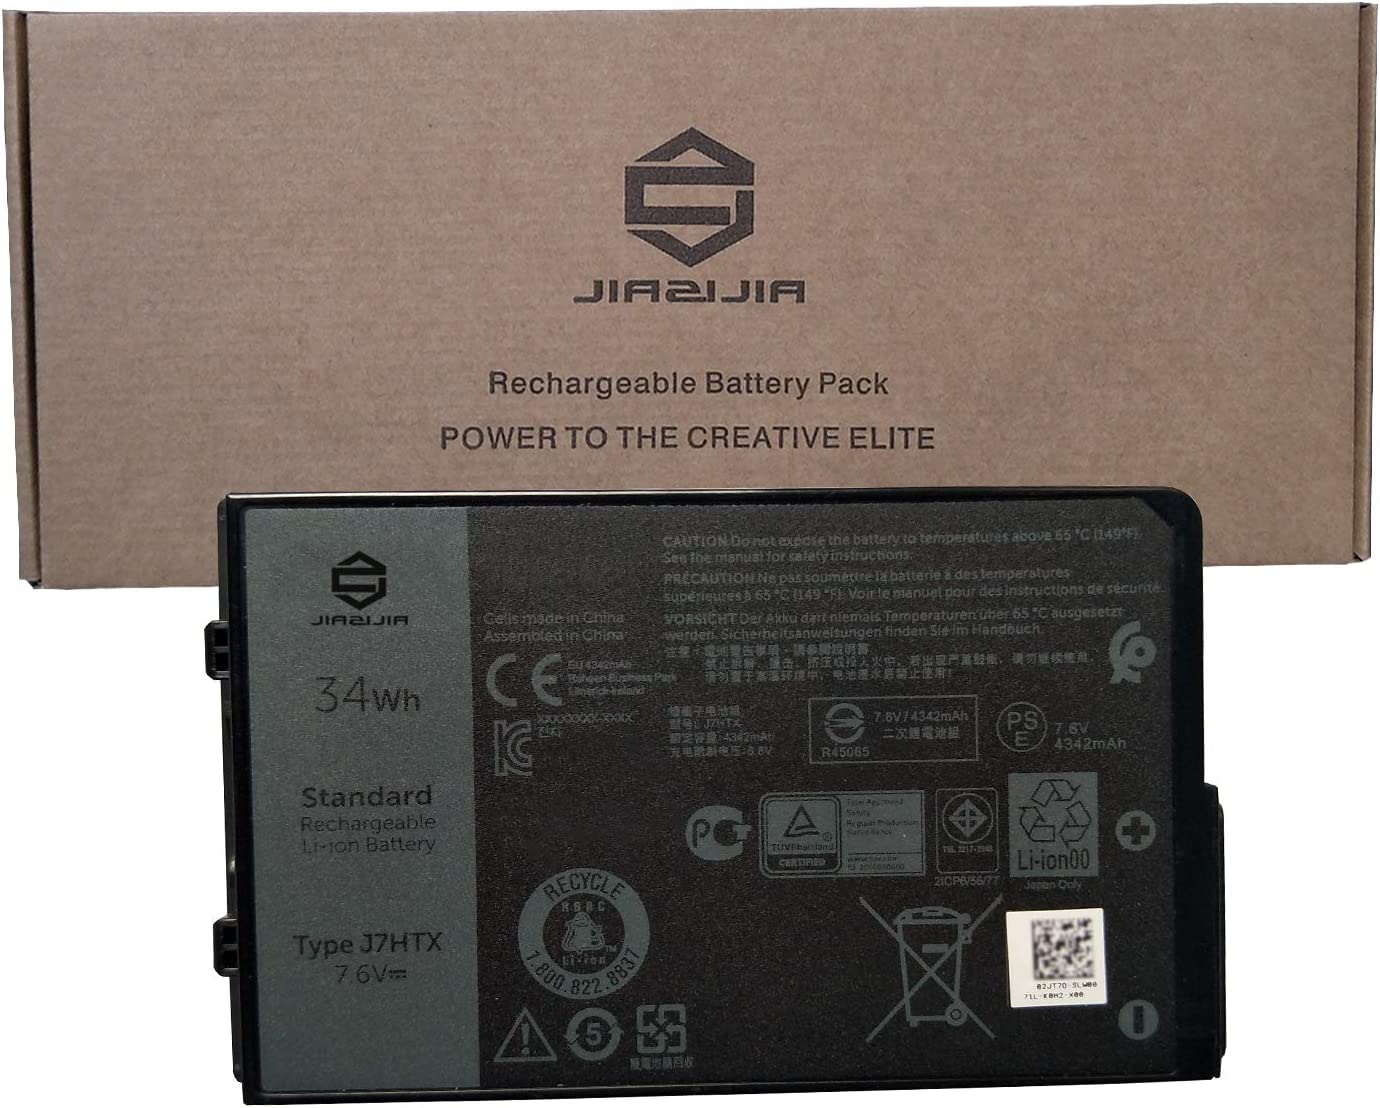 JIAZIJIA J7HTX Laptop Battery Replacement for Dell Latitude 7202 7212 7220 Rugged Extreme Tablet Series Notebook 02JT7D 7XNTR FH8RW Black 7.6V 34Wh 4342mAh